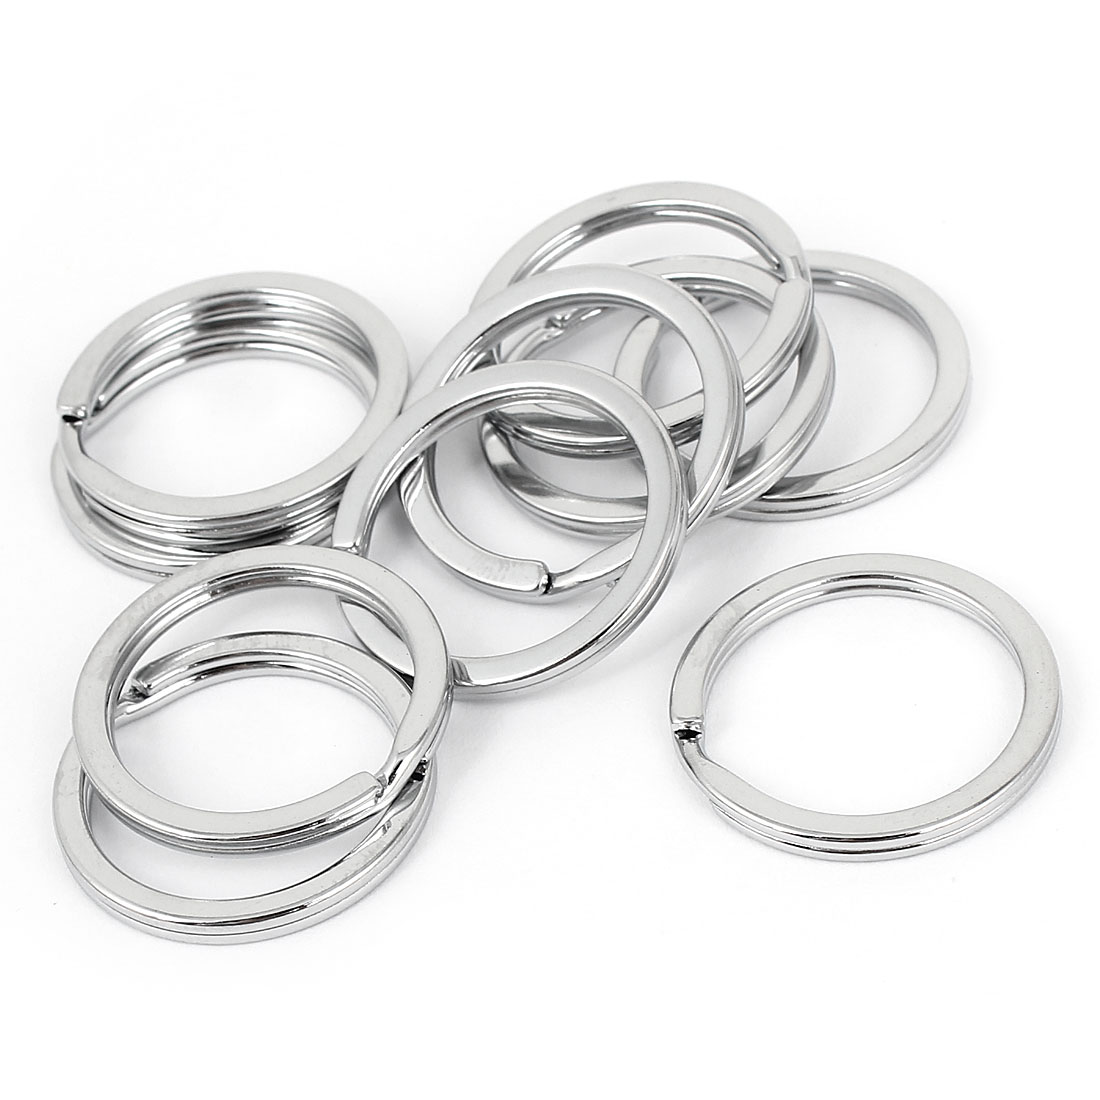 "Unique Bargains Household Silver Tone Metal 1"" Dia Ring Hanging Keyring Key Chain Holder 10pcs"